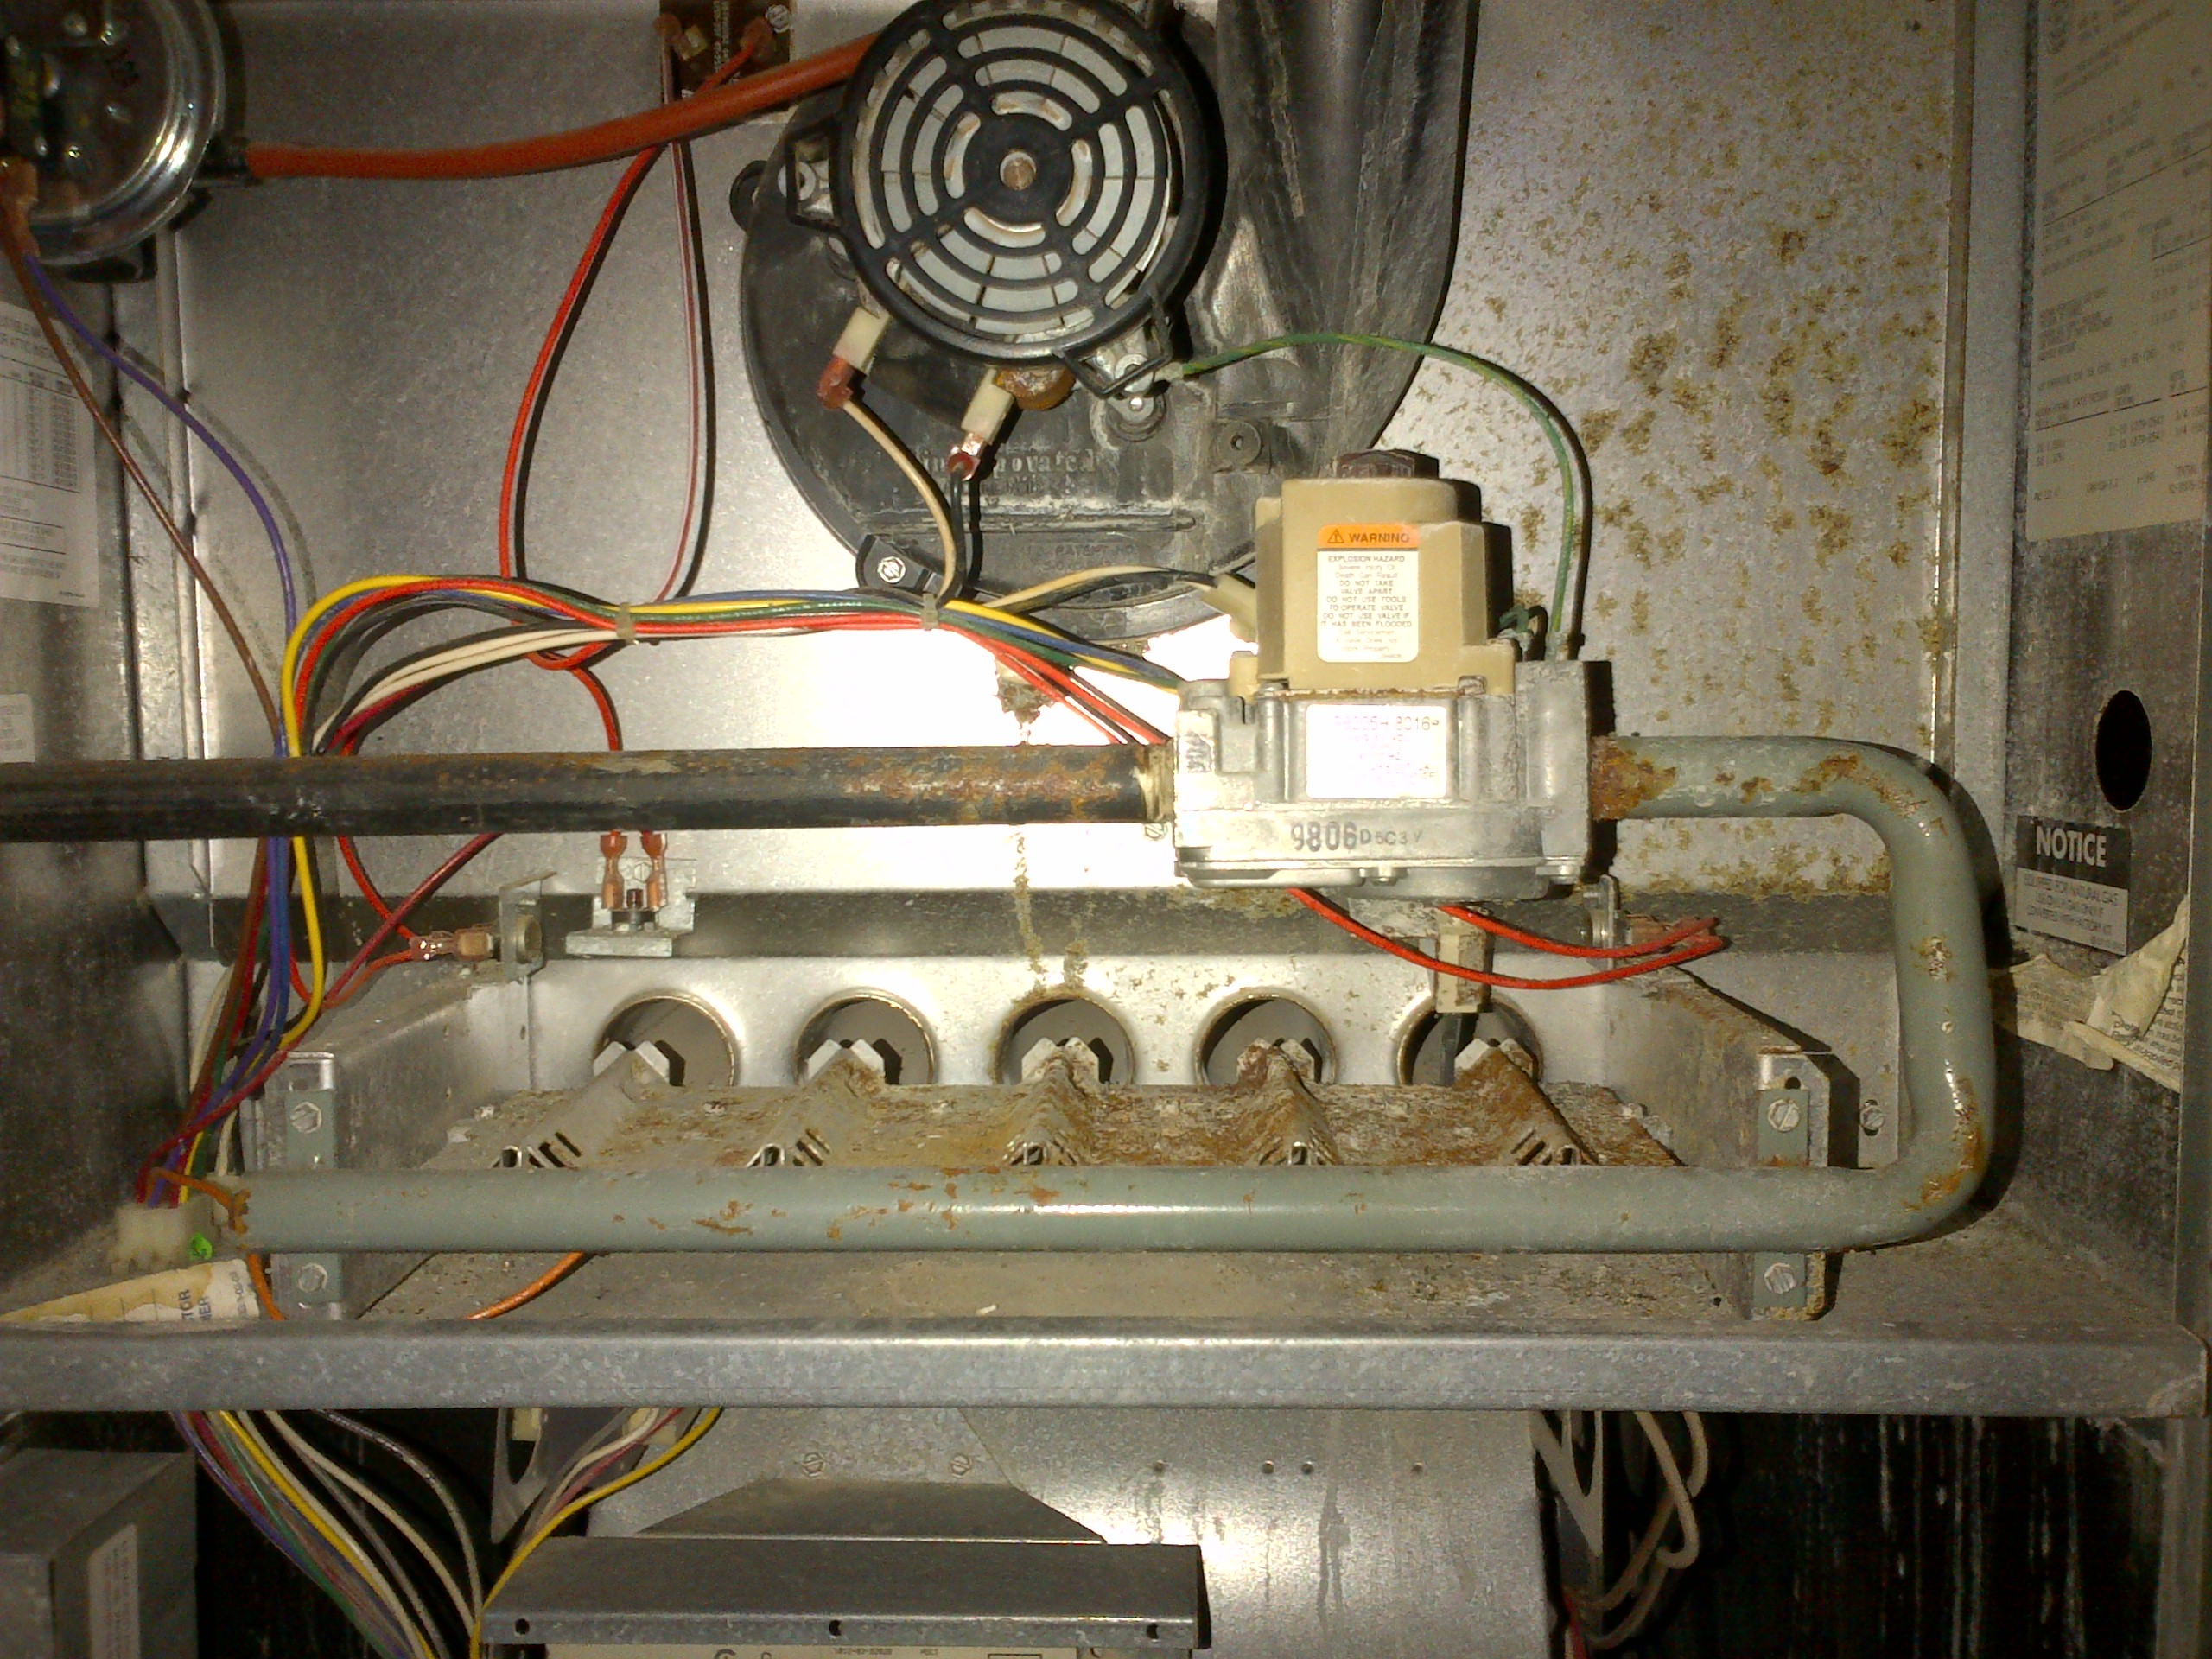 rheem criterion ii gas furnace. customer reply replied 5 years ago rheem criterion ii gas furnace